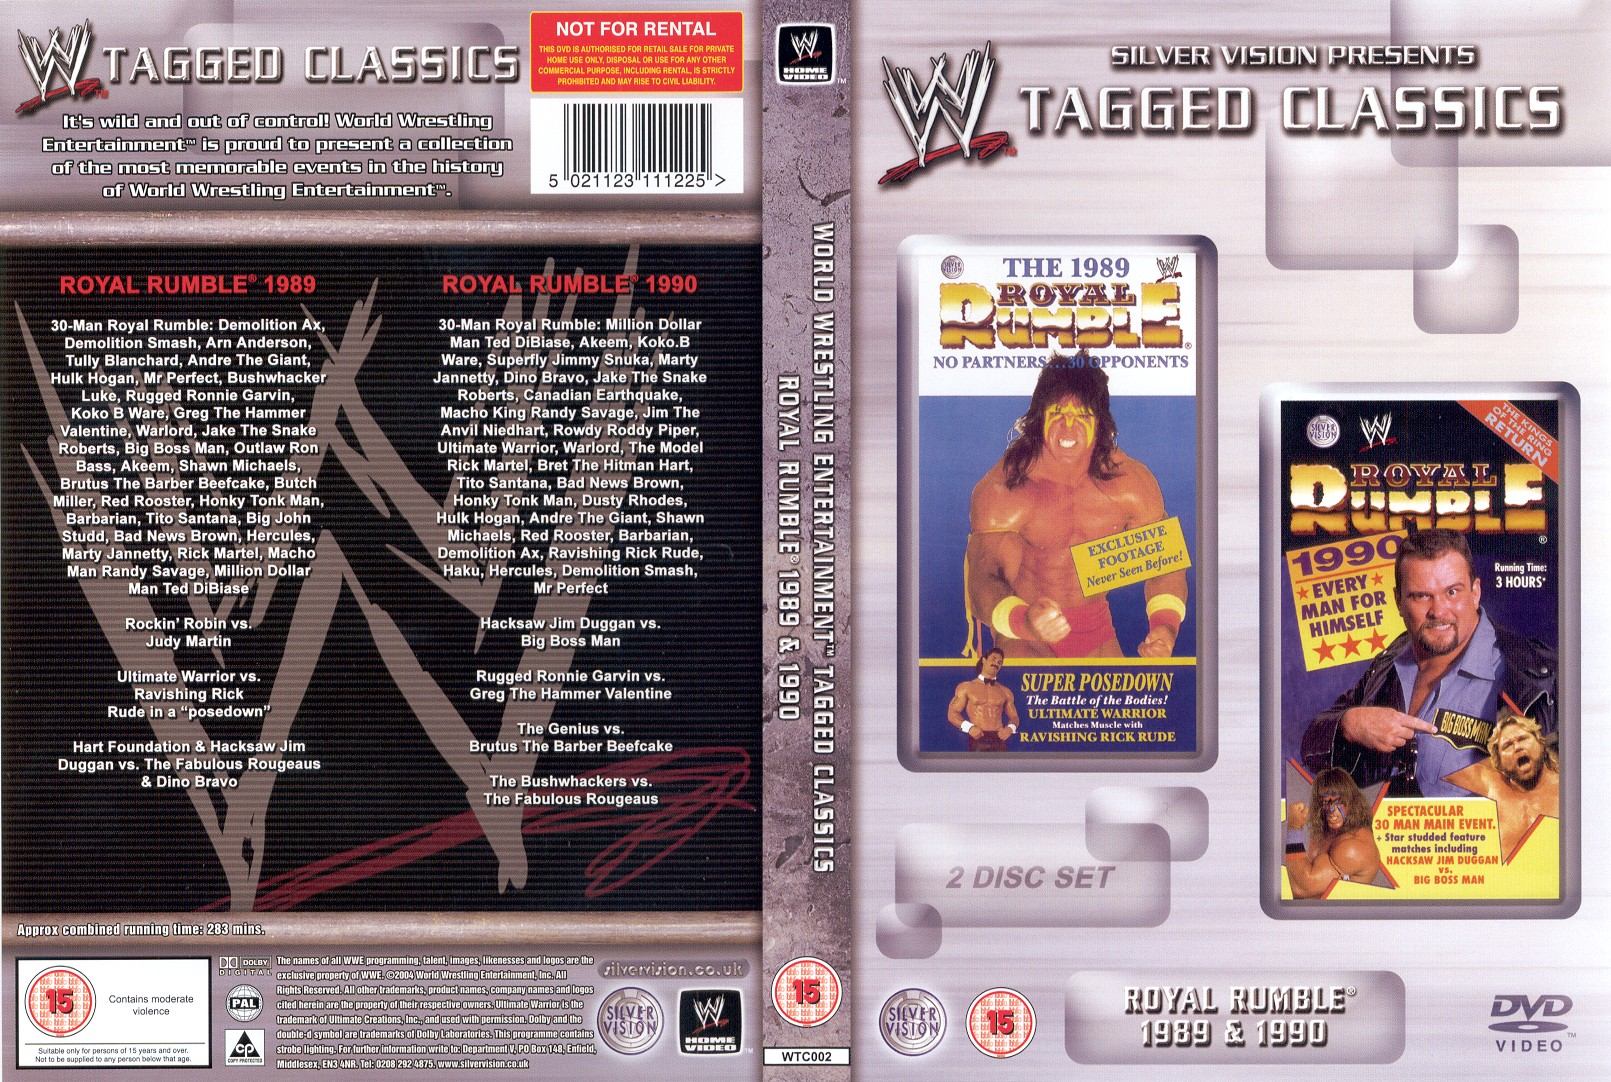 Royal Rumble 1989 & 1990